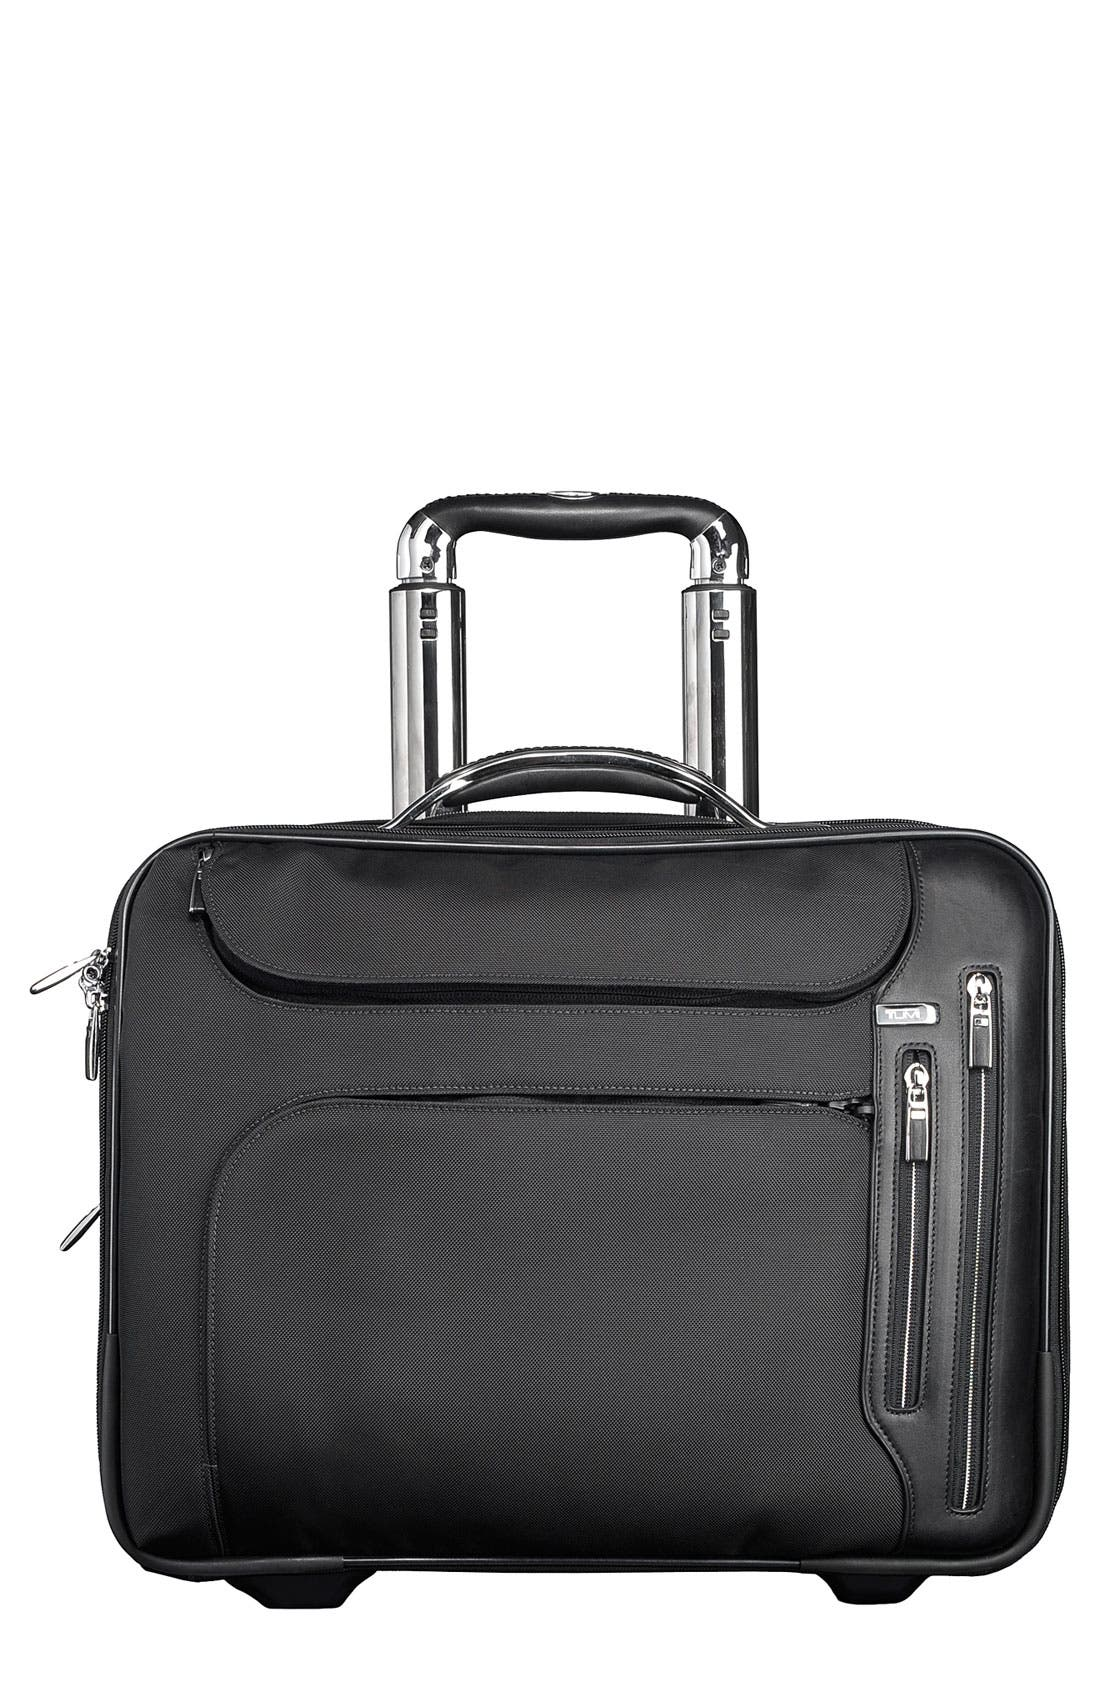 'Arrive - LaGuardia' Wheeled Briefcase with Laptop Insert,                         Main,                         color, Black